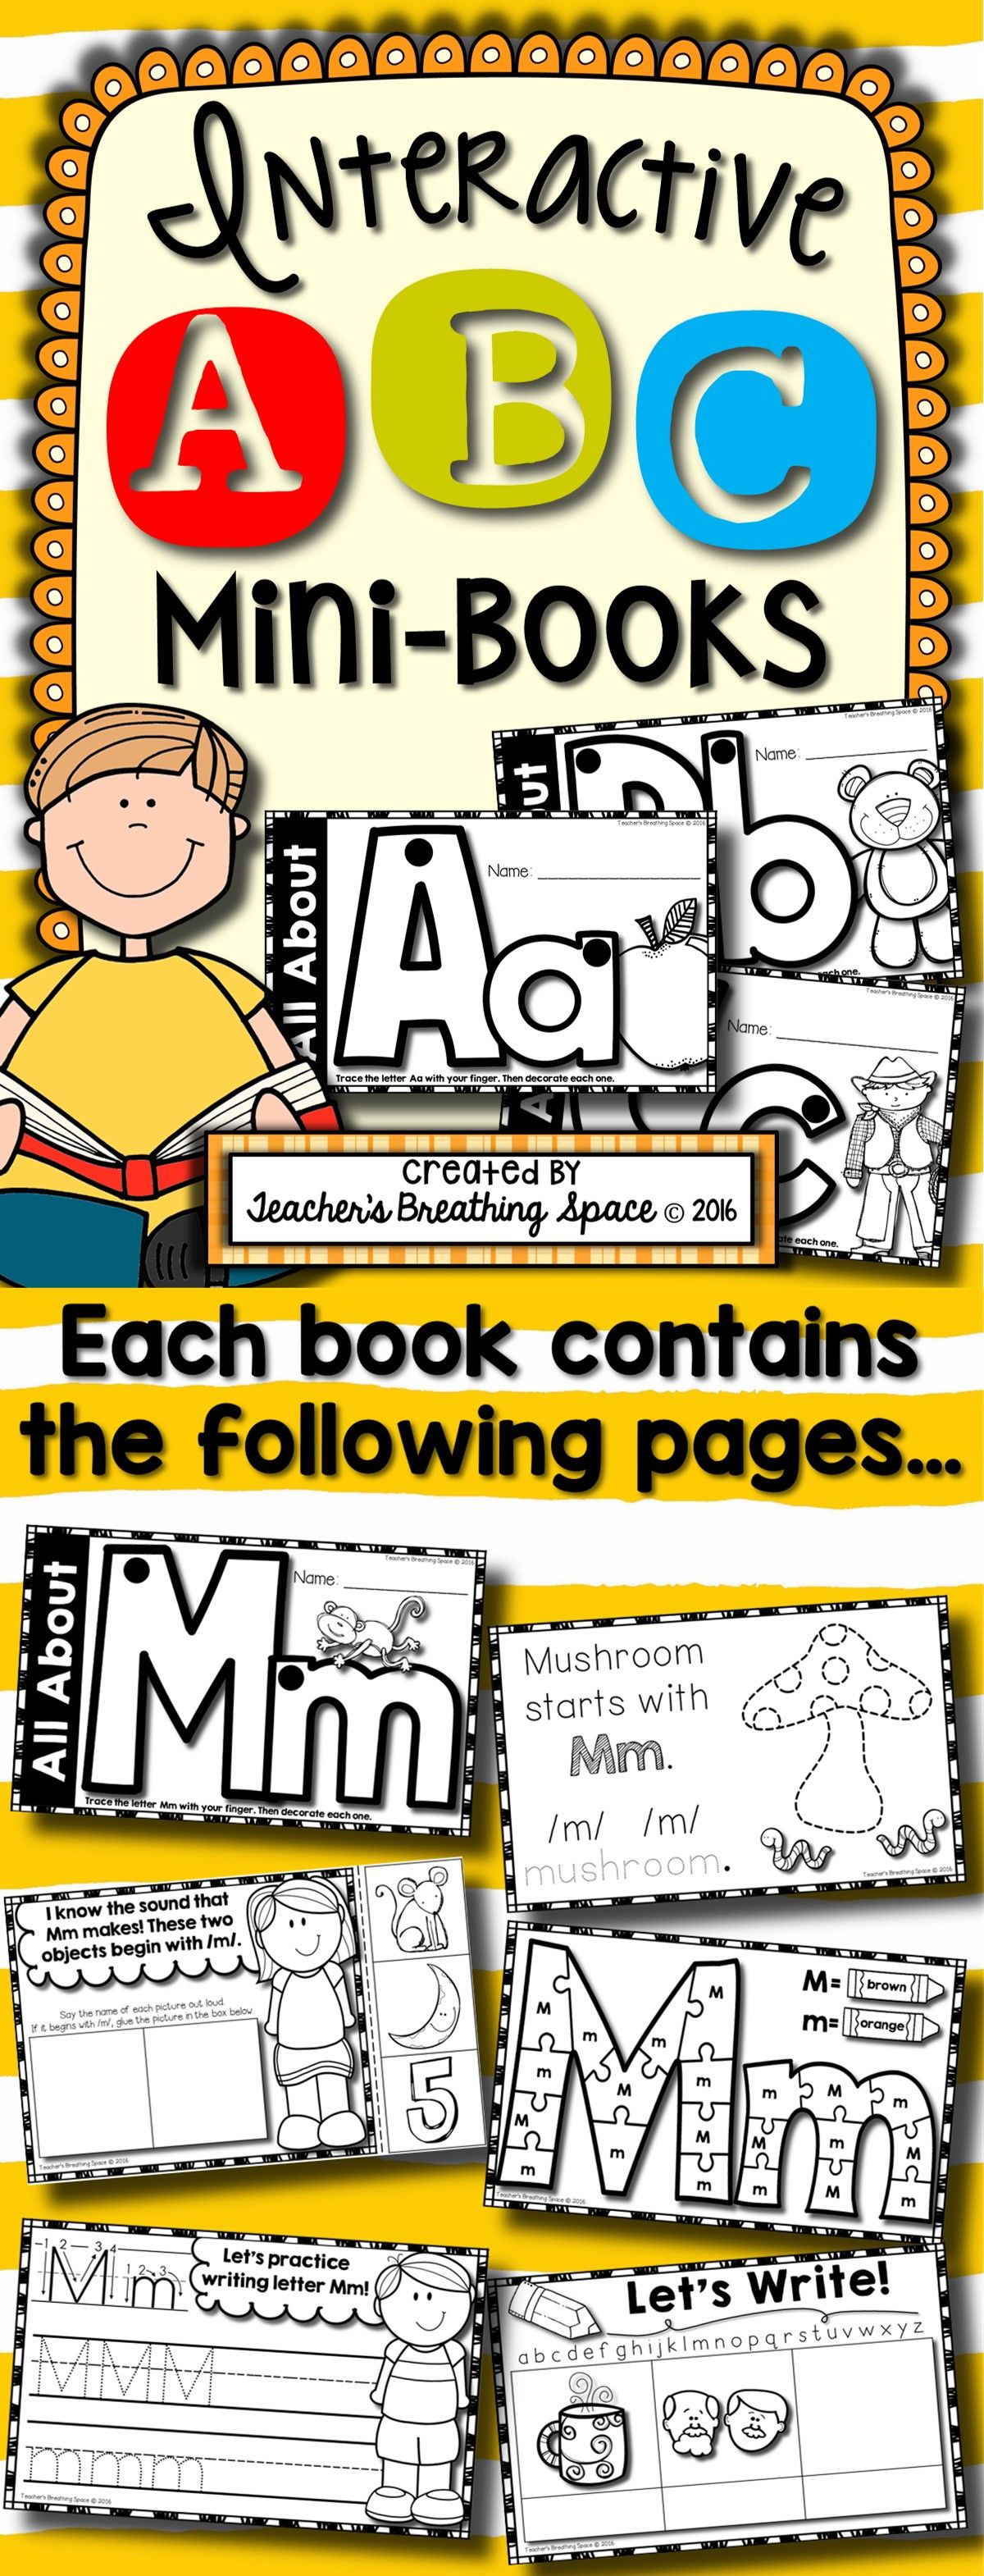 Alphabet Books Interactive Abc Mini Books For Every Letter Of The Alphabet